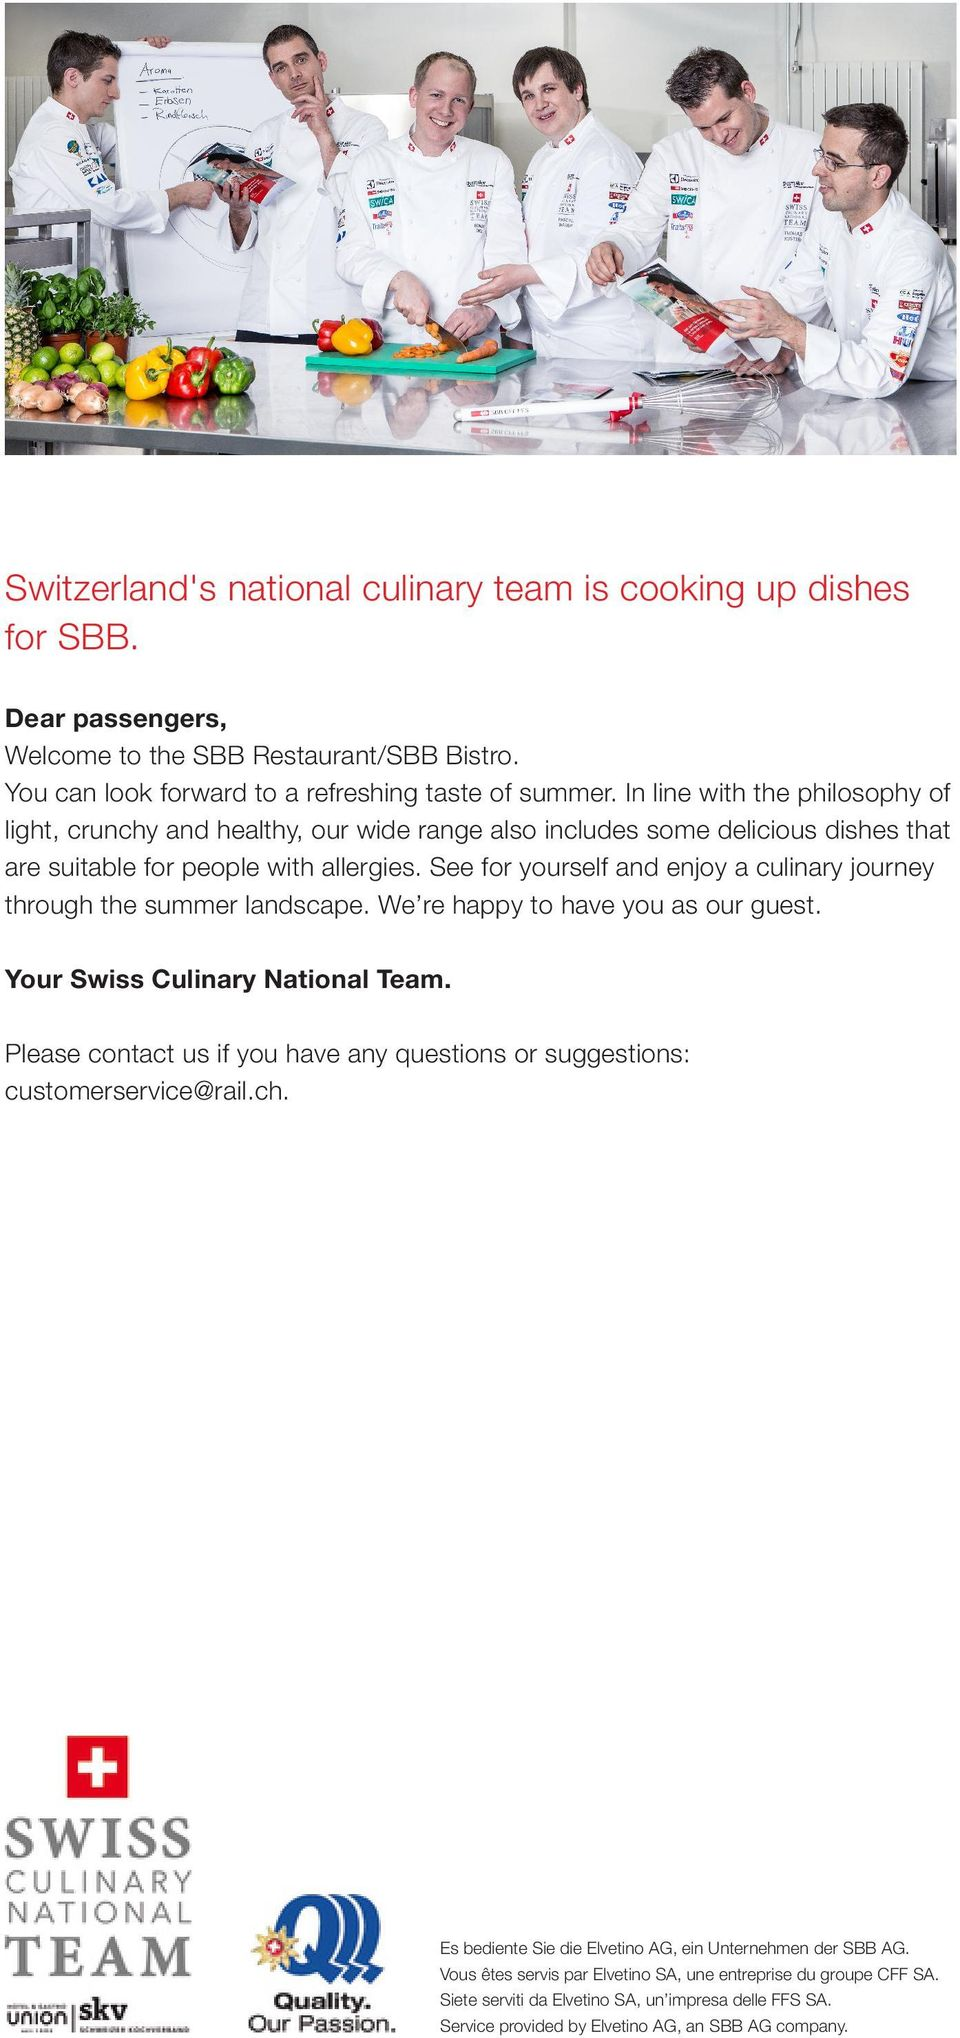 See for yourself and enjoy a culinary journey through the summer landscape. We re happy to have you as our guest. Your Swiss Culinary National Team.